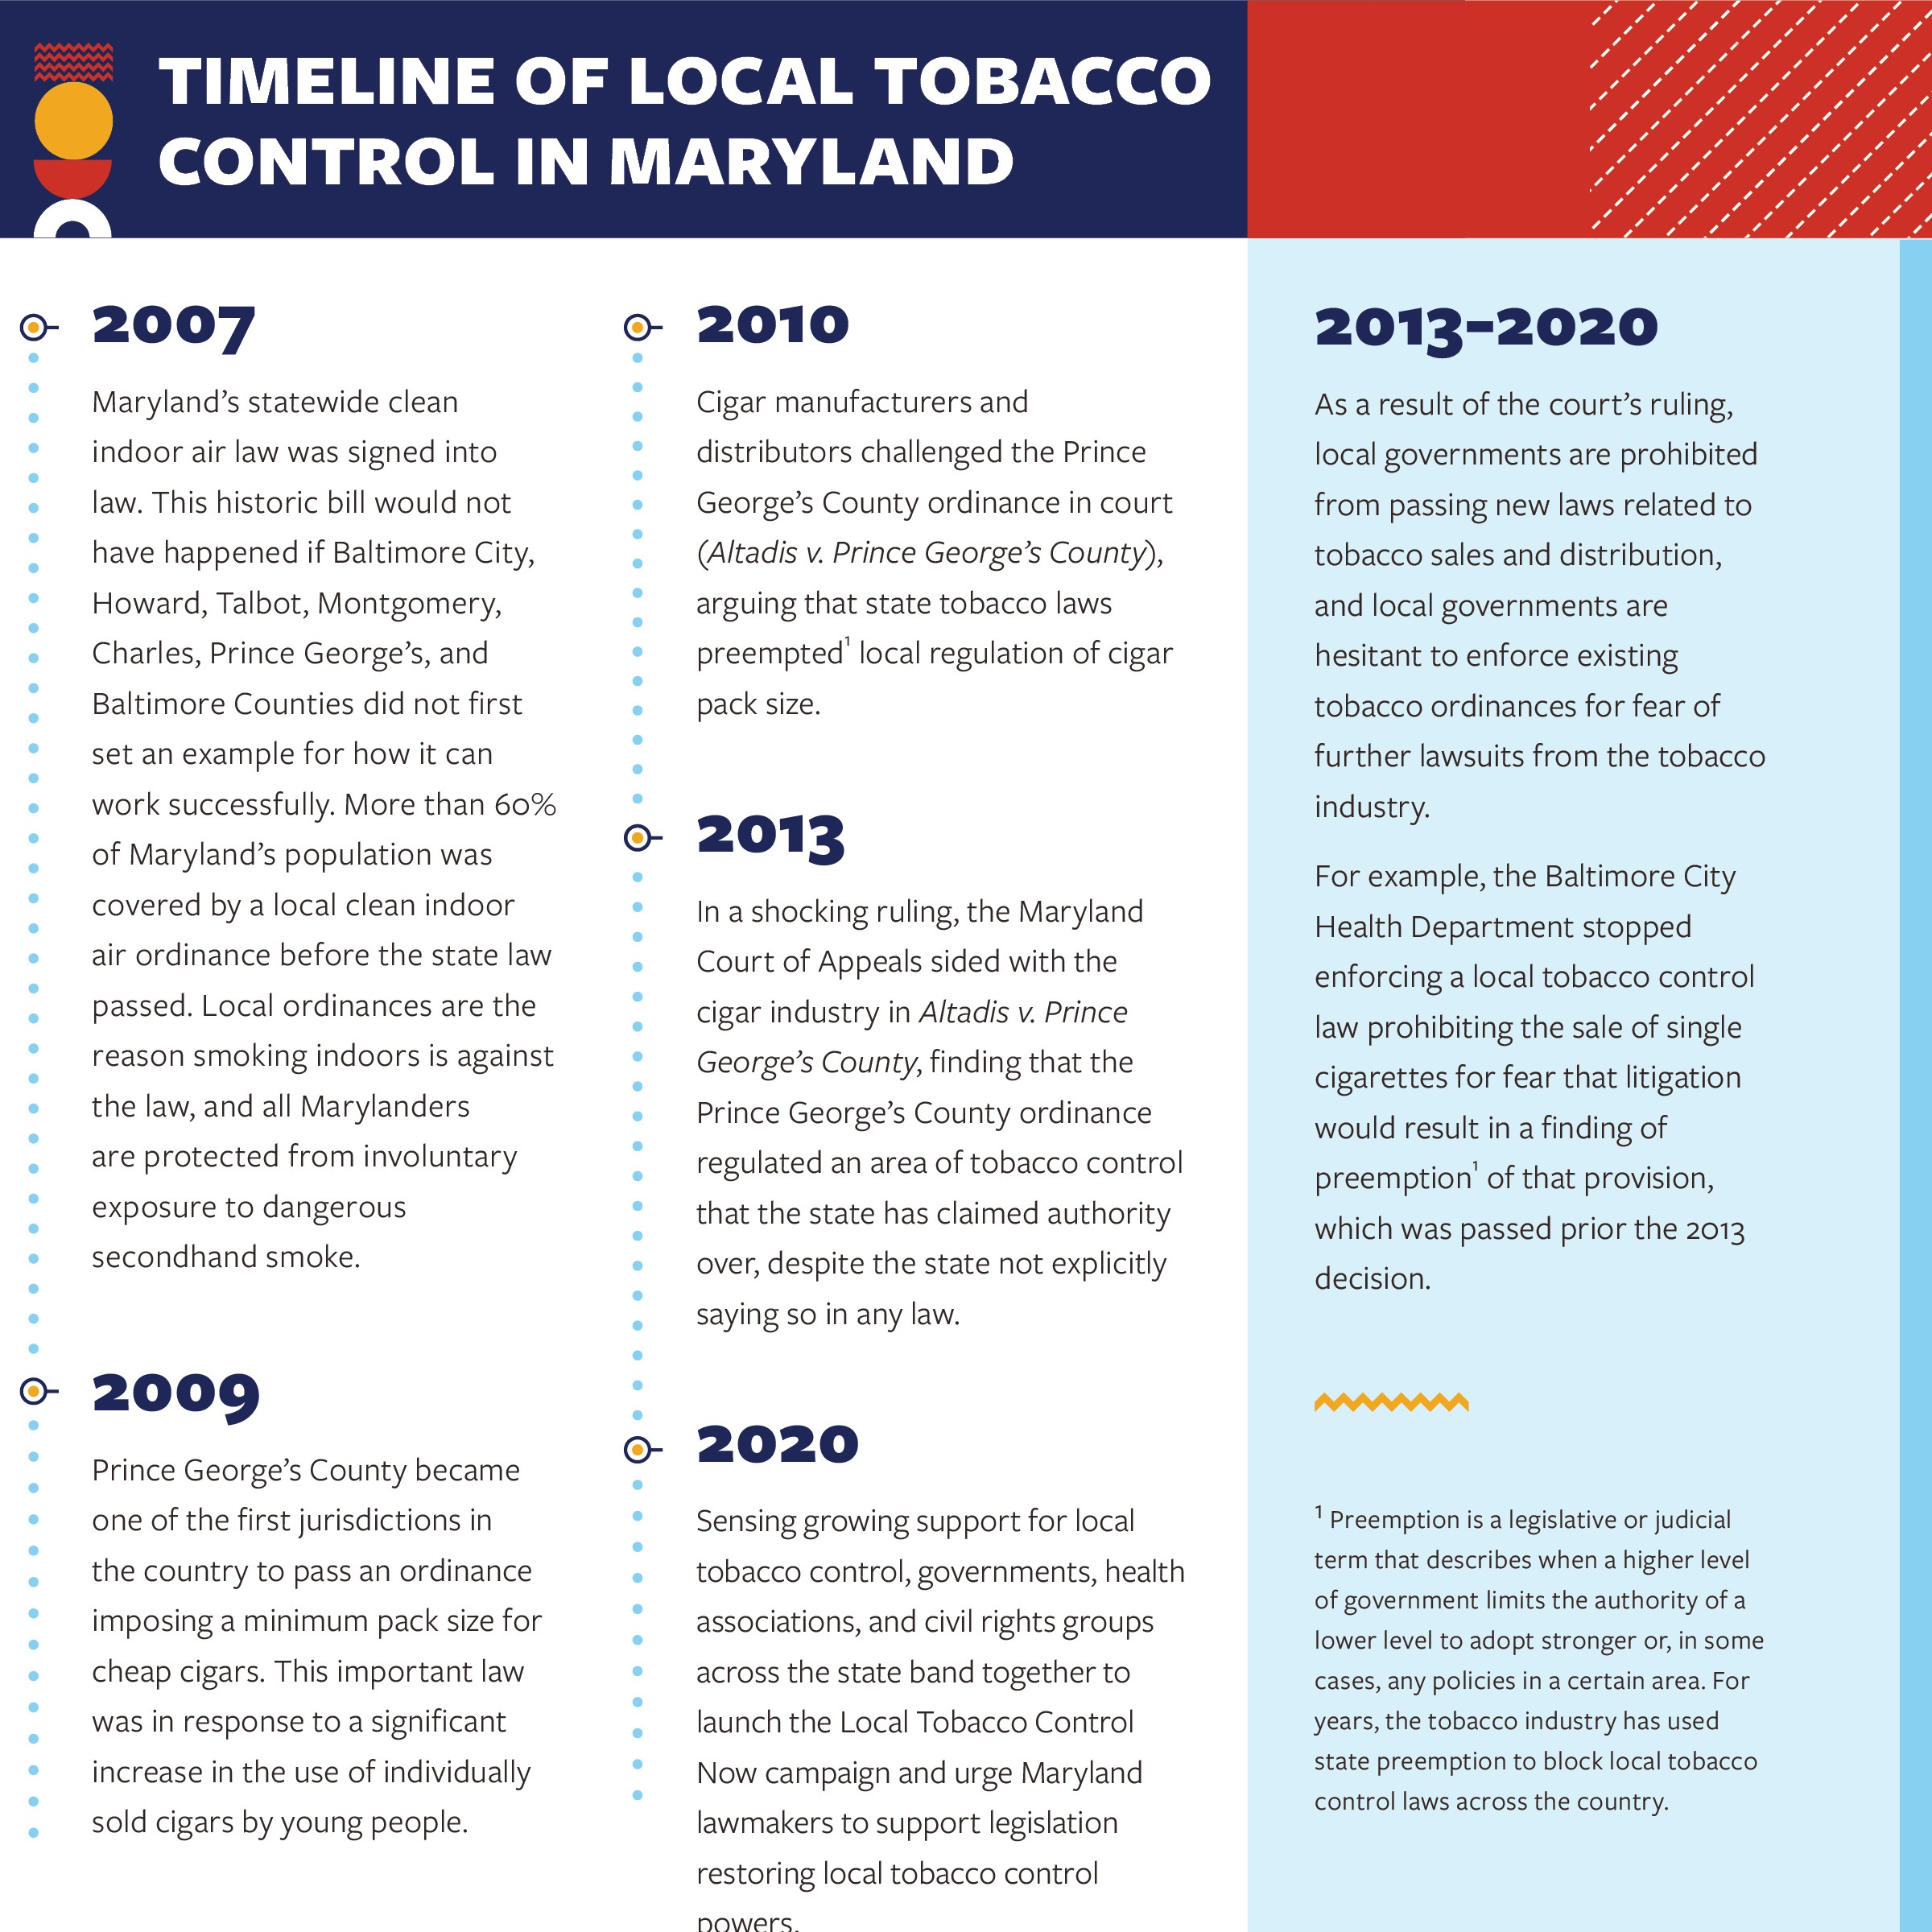 Timeline of Local Tobacco Control in Maryland